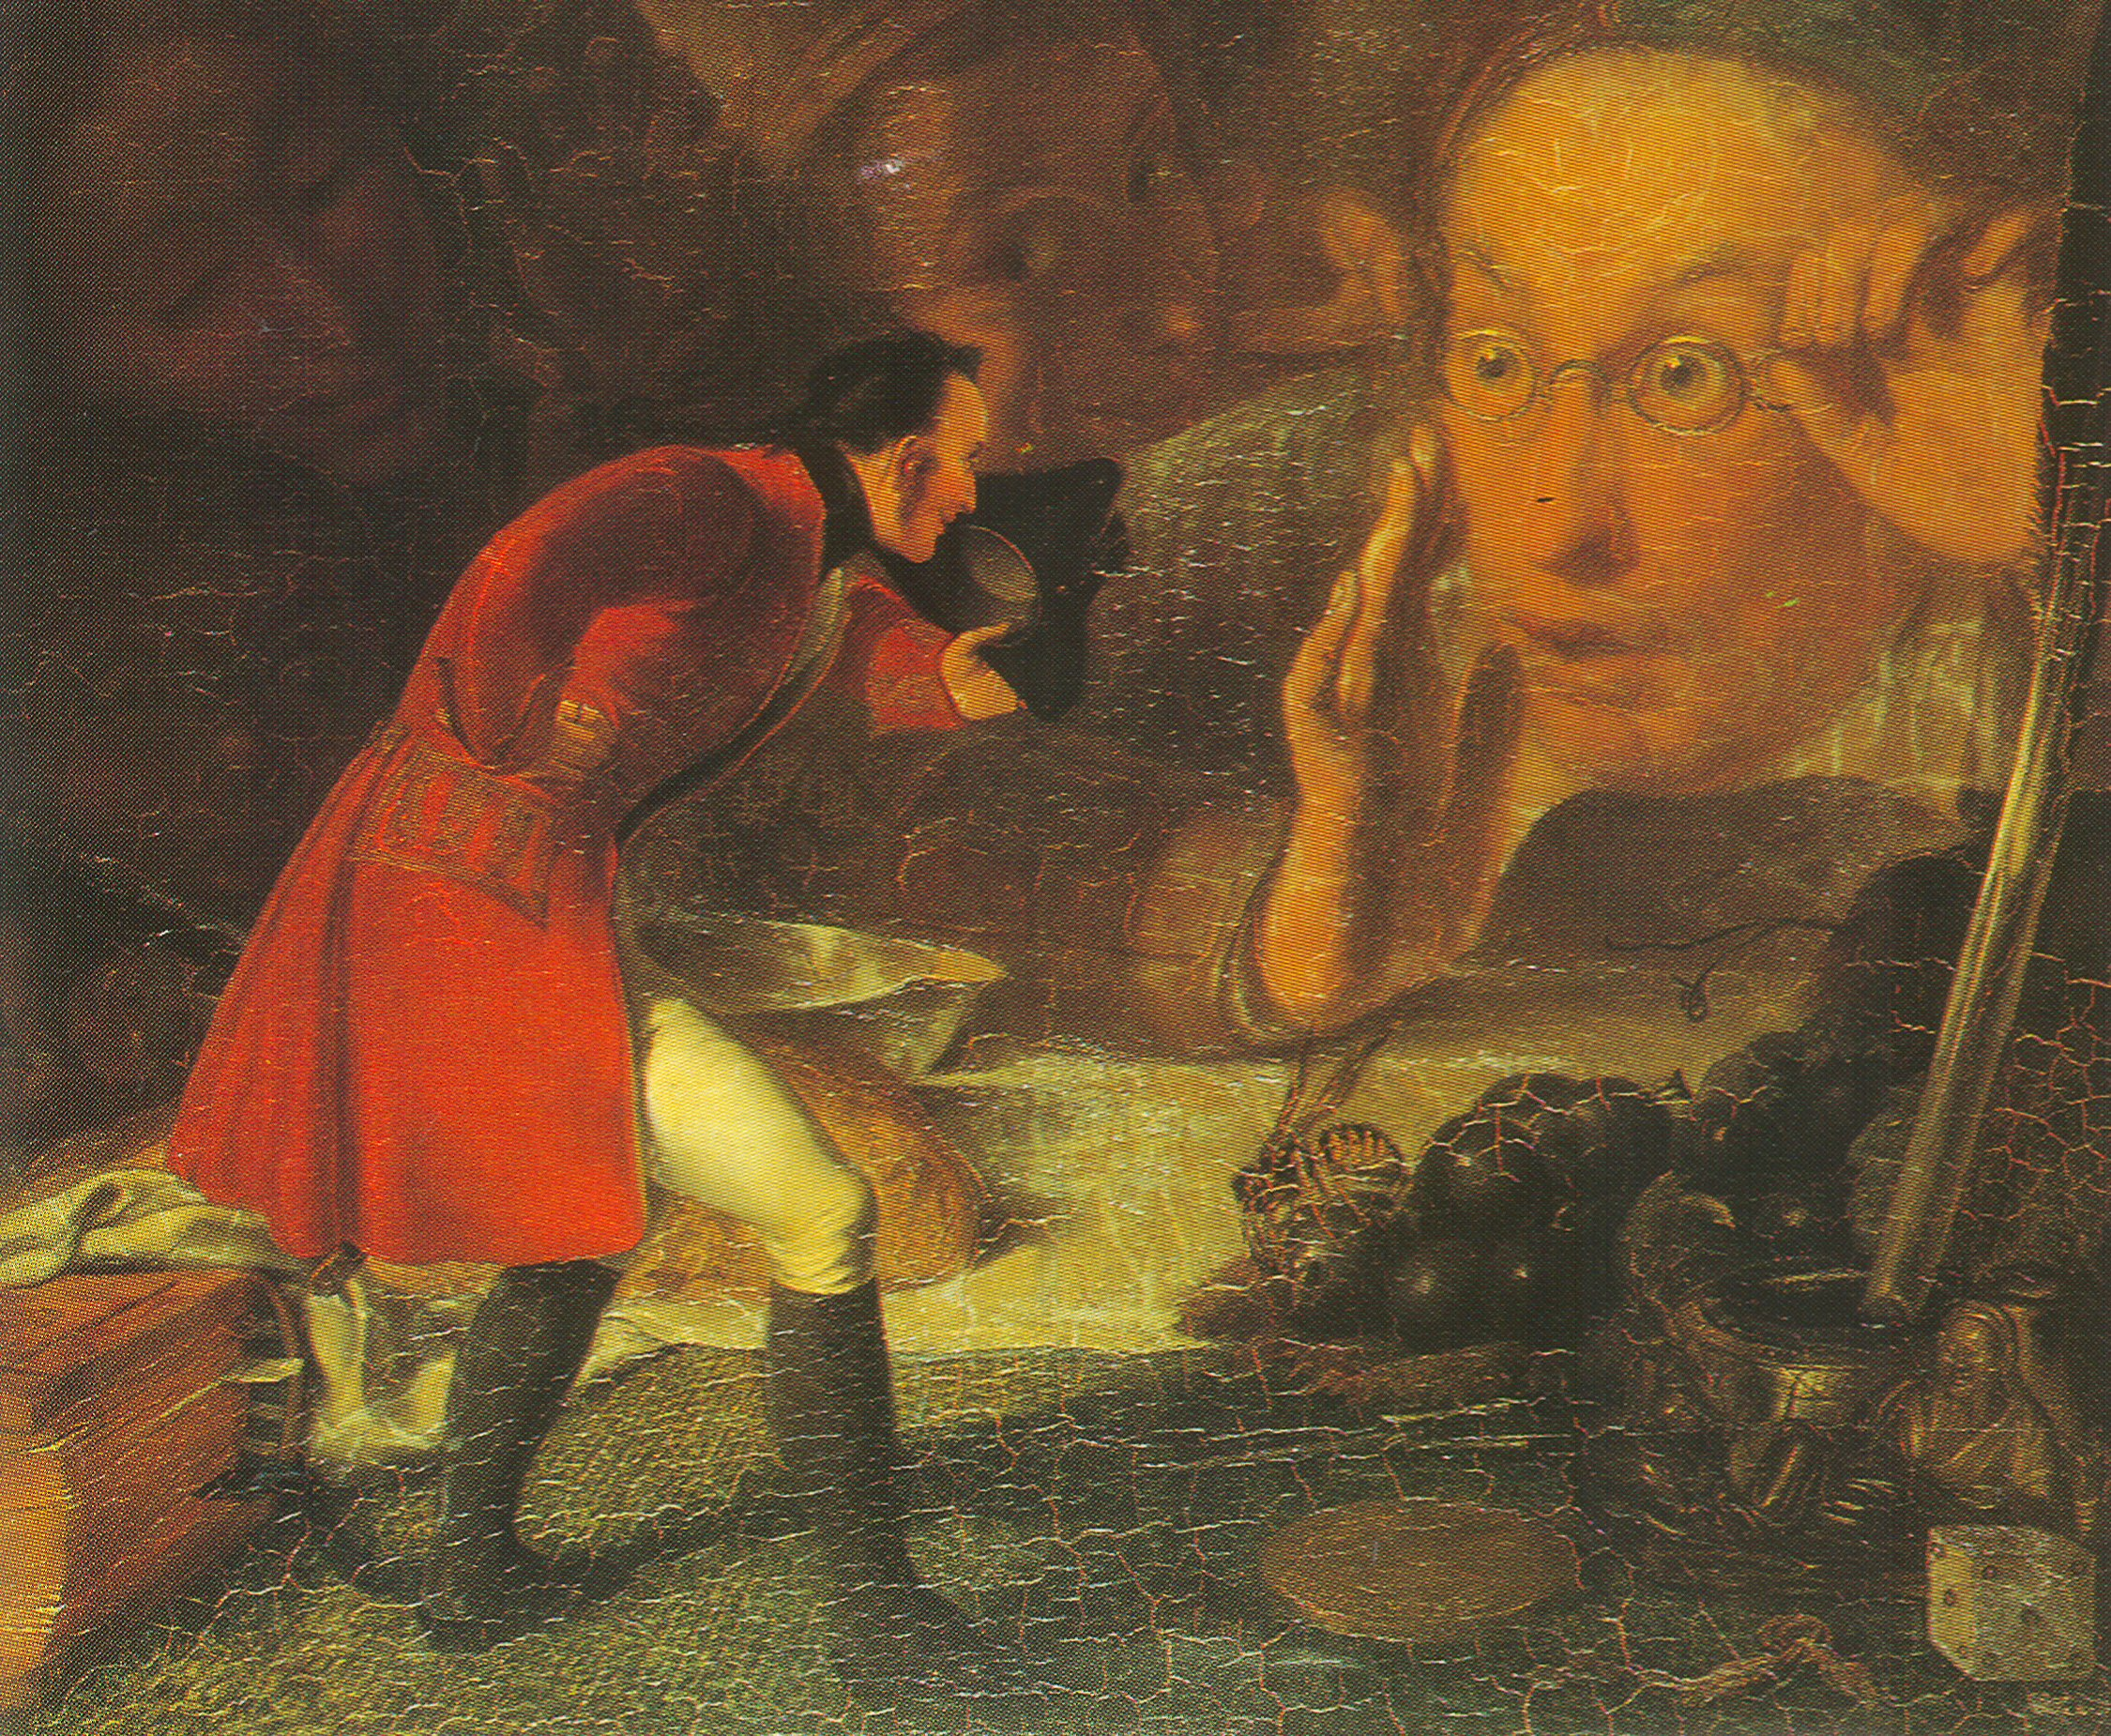 https://upload.wikimedia.org/wikipedia/commons/7/77/Szene_aus_Gulliver's_Reisen_-_Gulliver_in_Brobdingnag.jpg